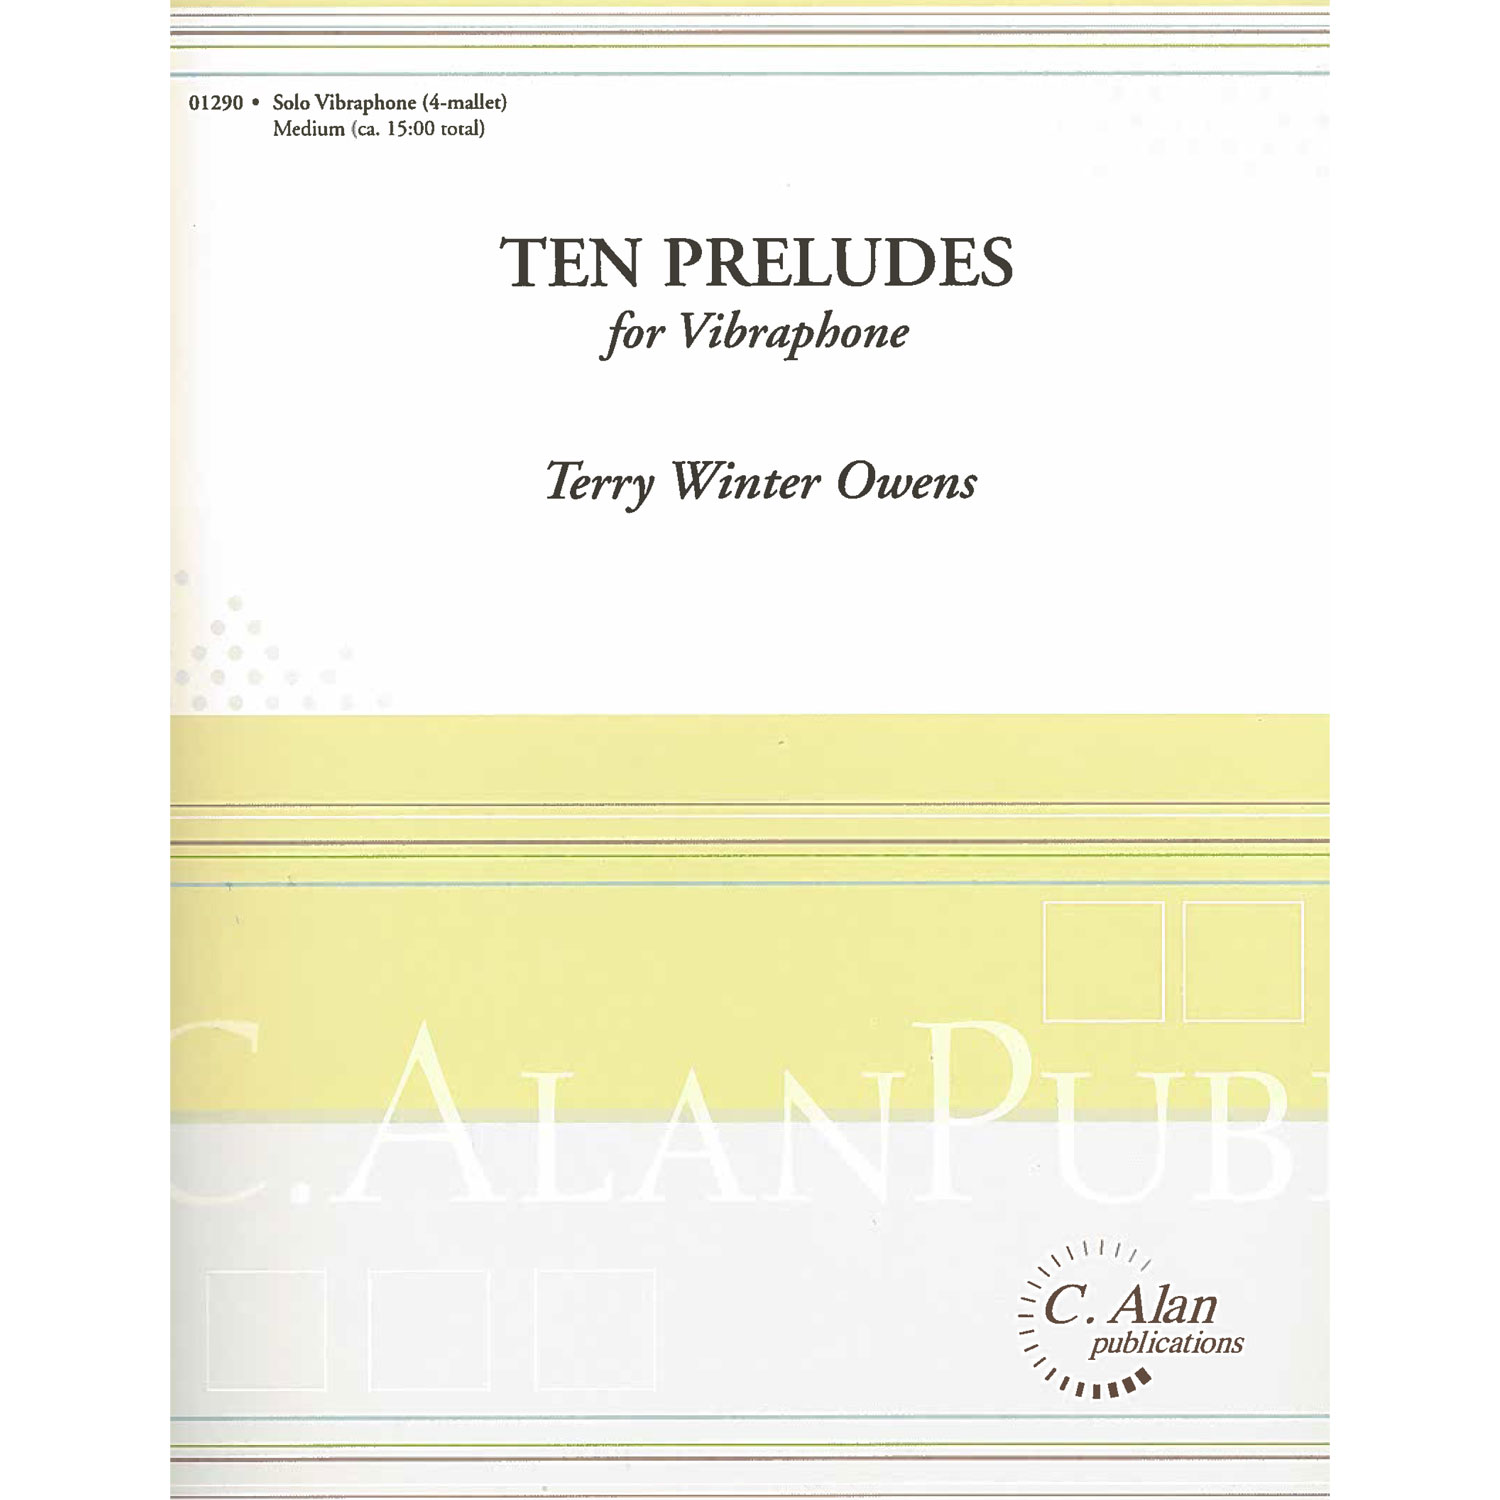 Ten Preludes for Vibraphone by Terry Winter Owens